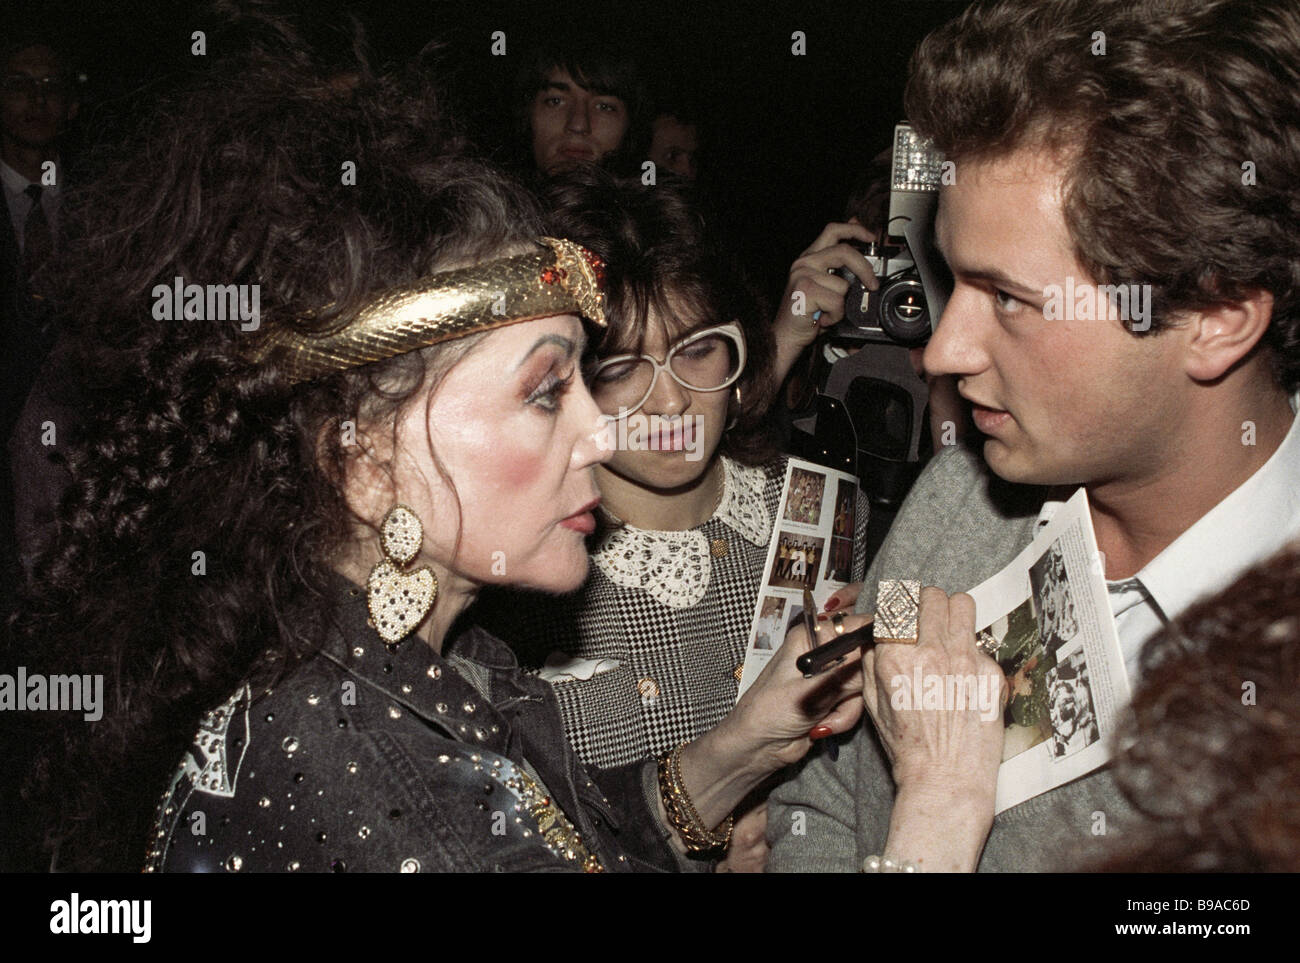 Jacqueline Stallone left mother of the famous actor Sylvester Stallone and one of the Stallone Rockets show initiators - Stock Image